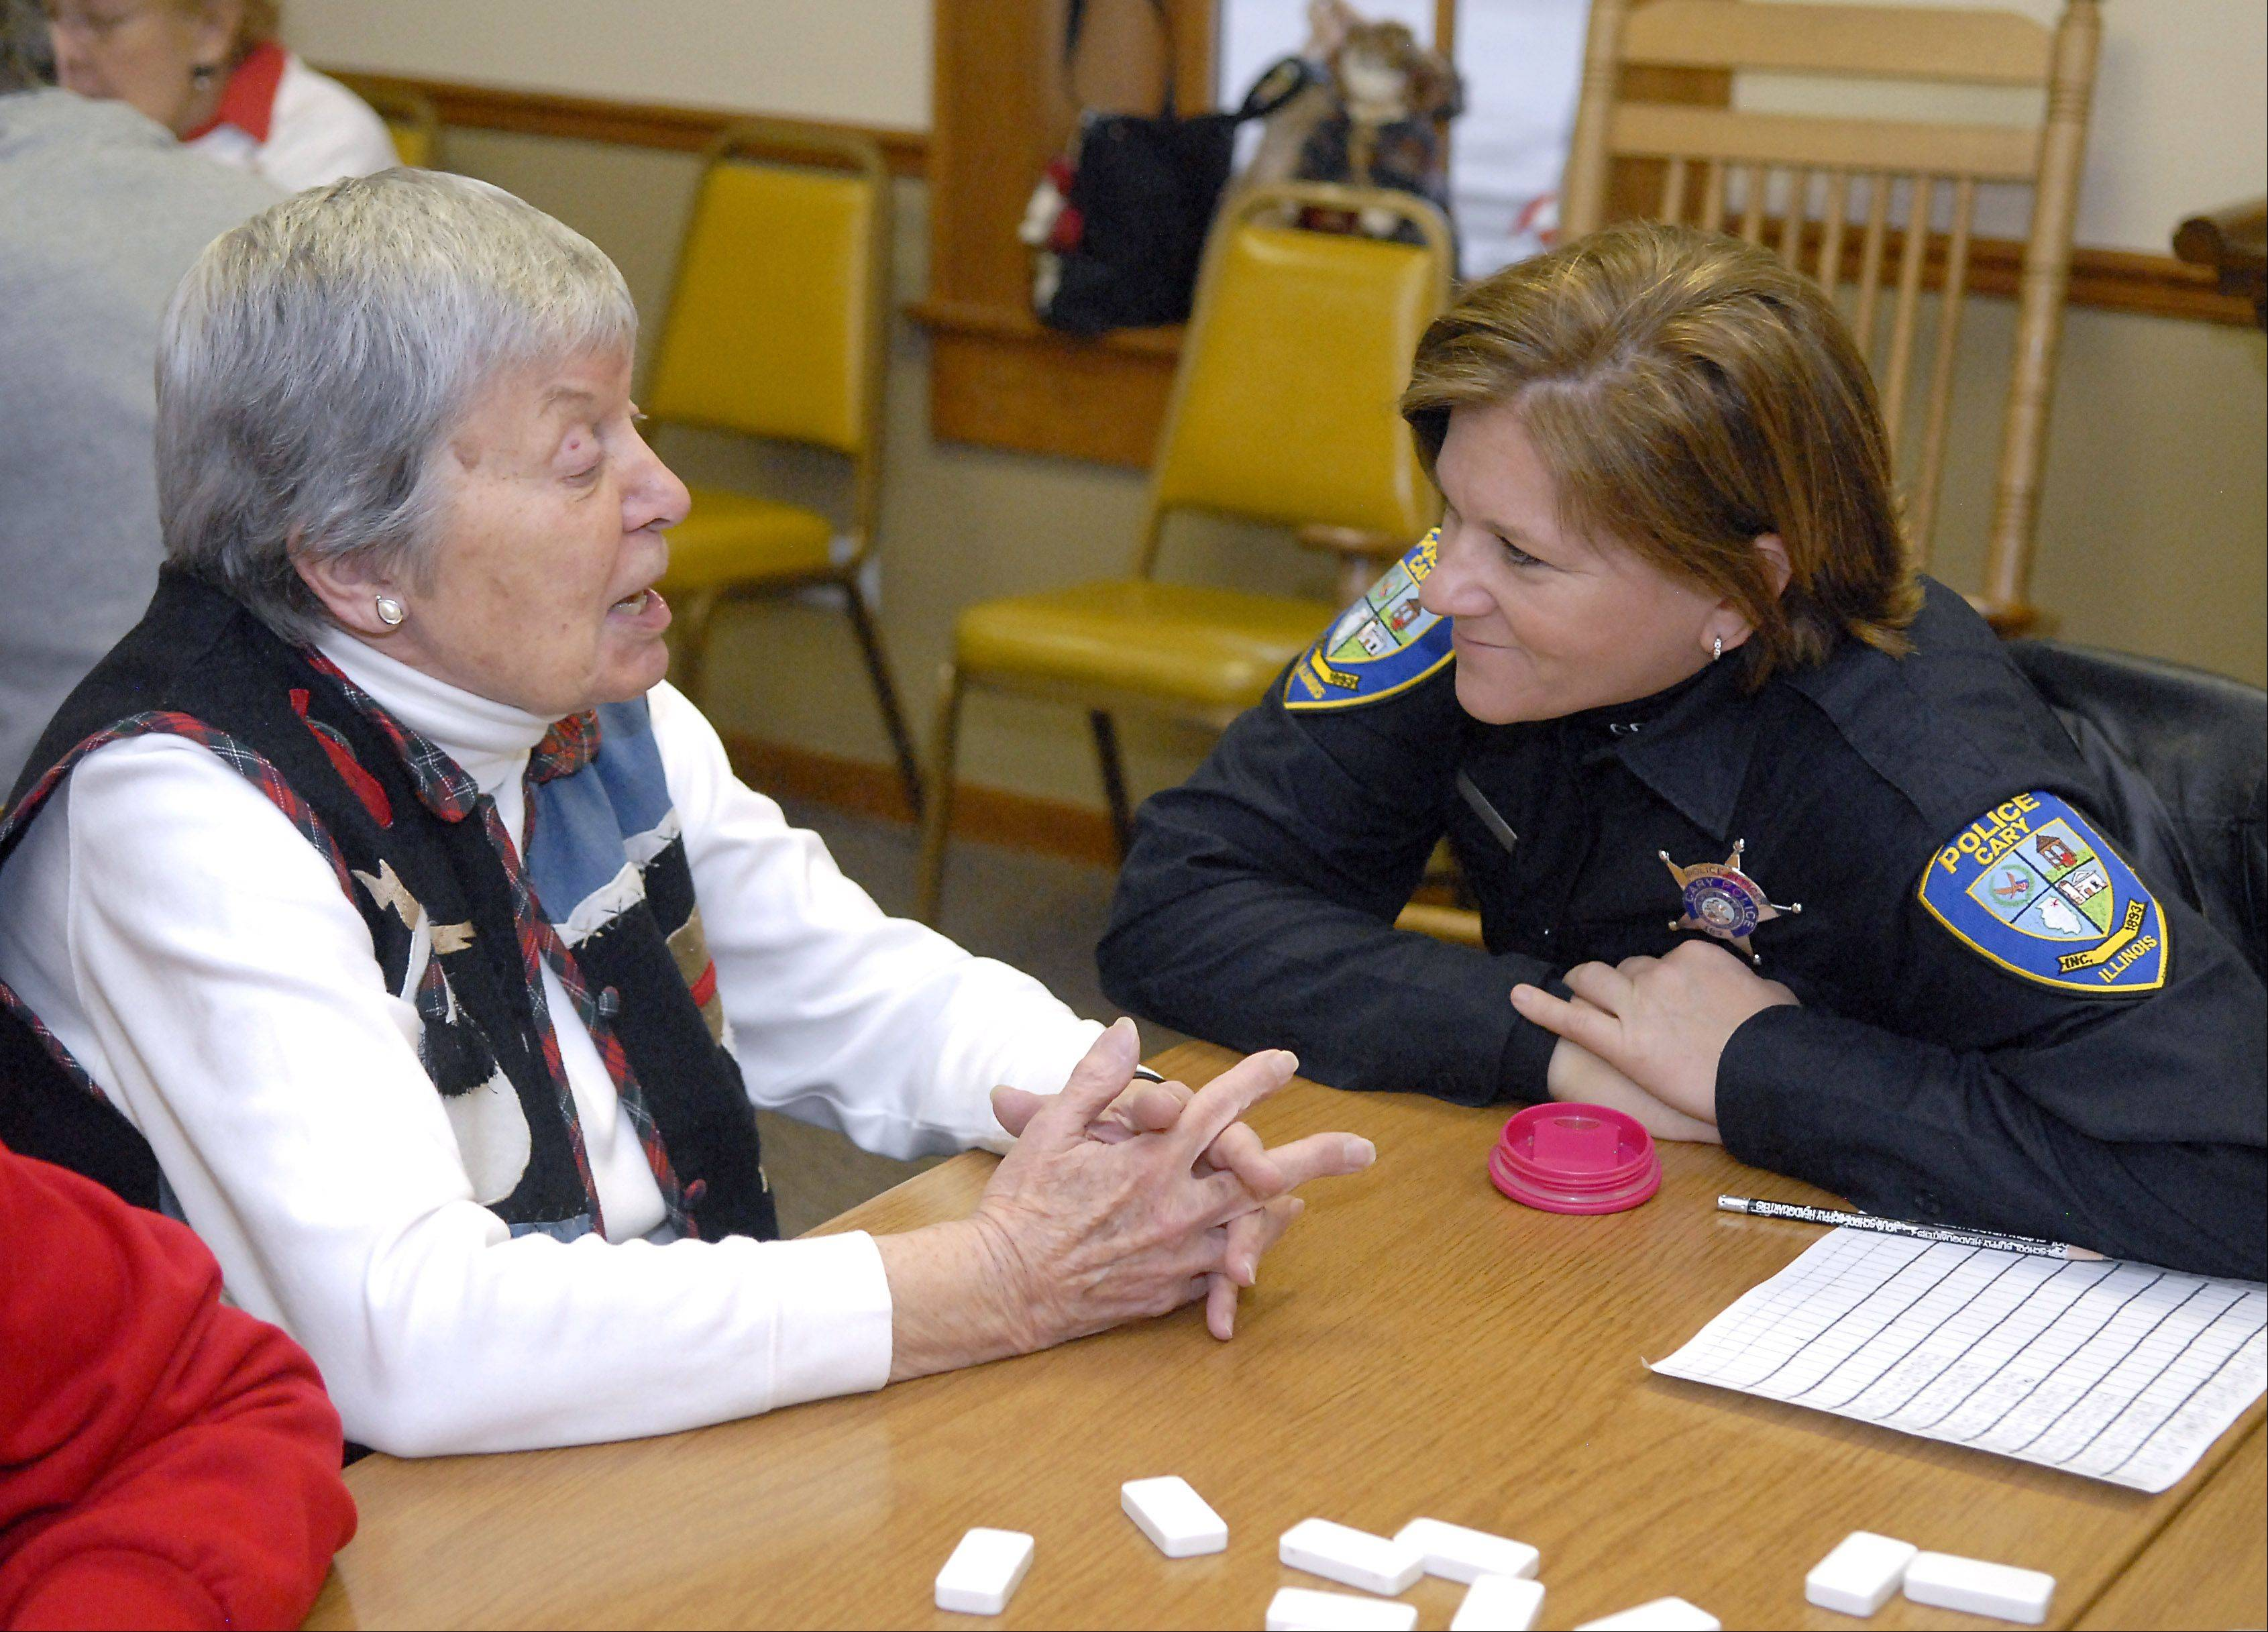 Officer Kathy Eiring chats with Beverly Kolpacke of Cary between Kolpacke's dominoes games at the Kraus Senior Center in Cary. Eiring visits the center at least once a week, sometimes more and even on her days off. The two have known each other for about five years.